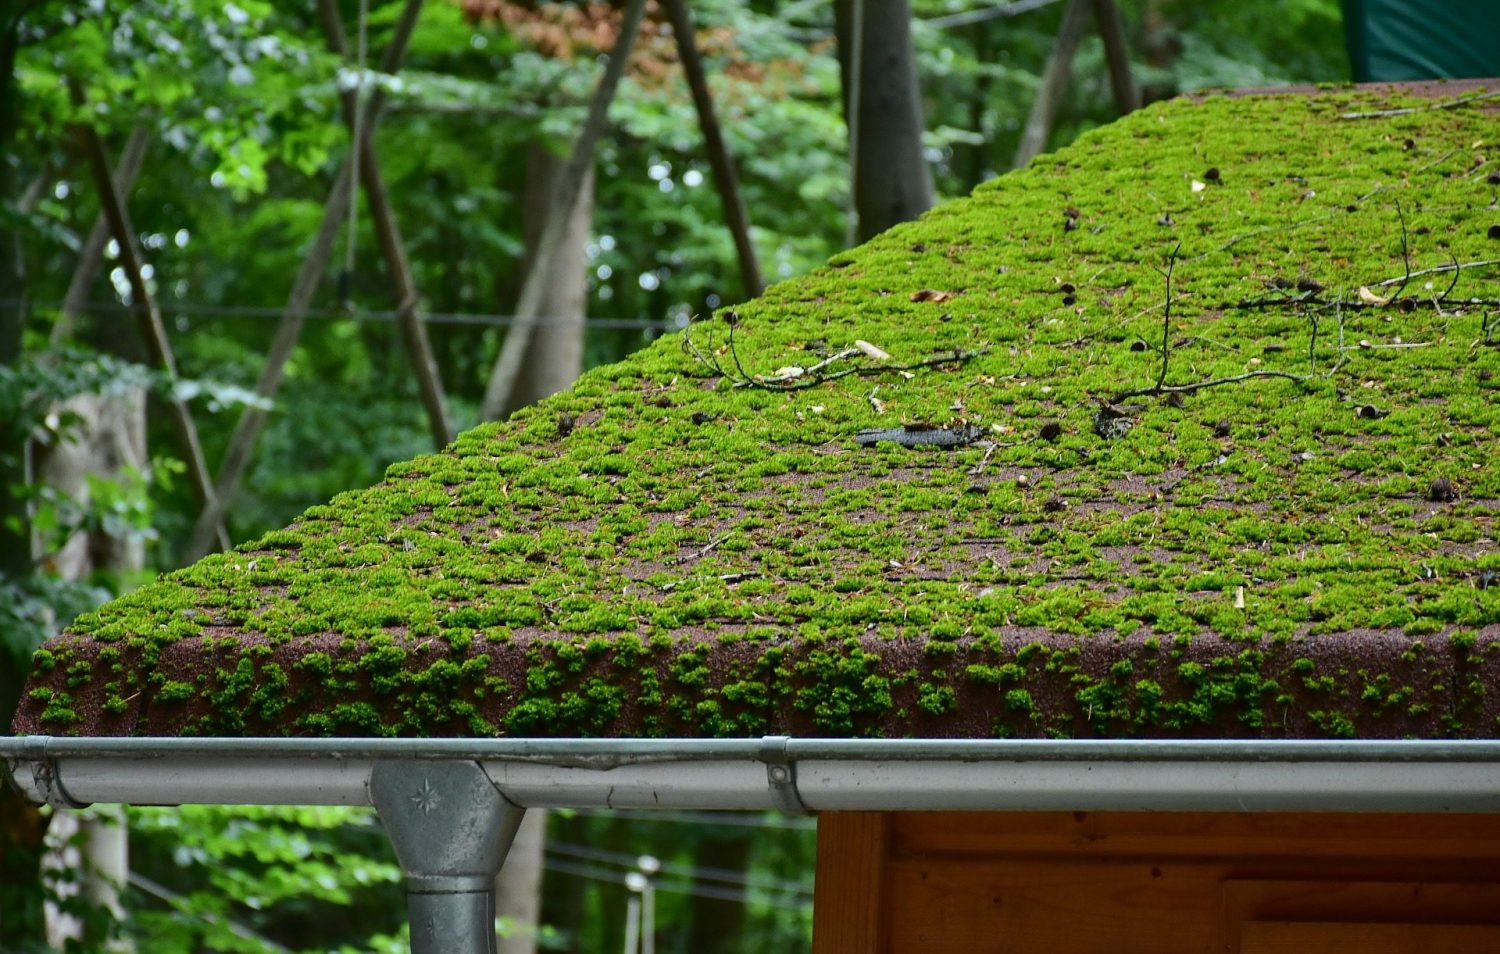 roof with moss growing on it